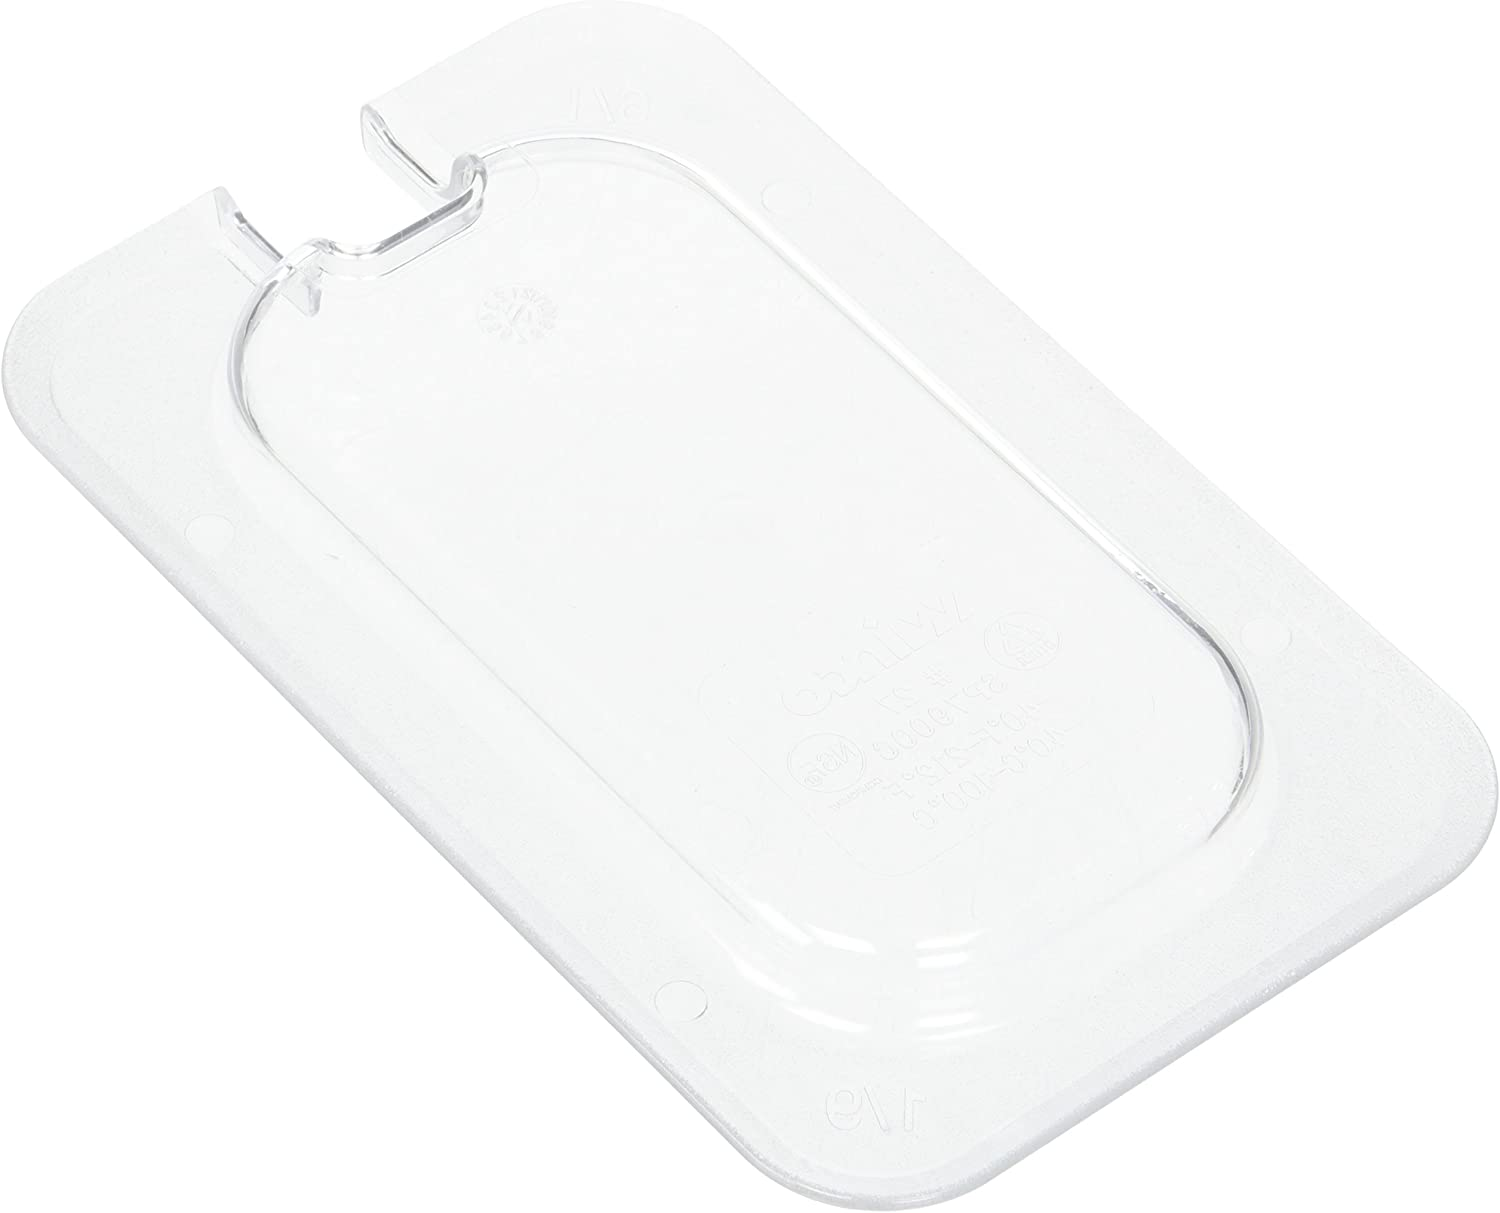 Winco 1/9 Pan, Slotted Cover